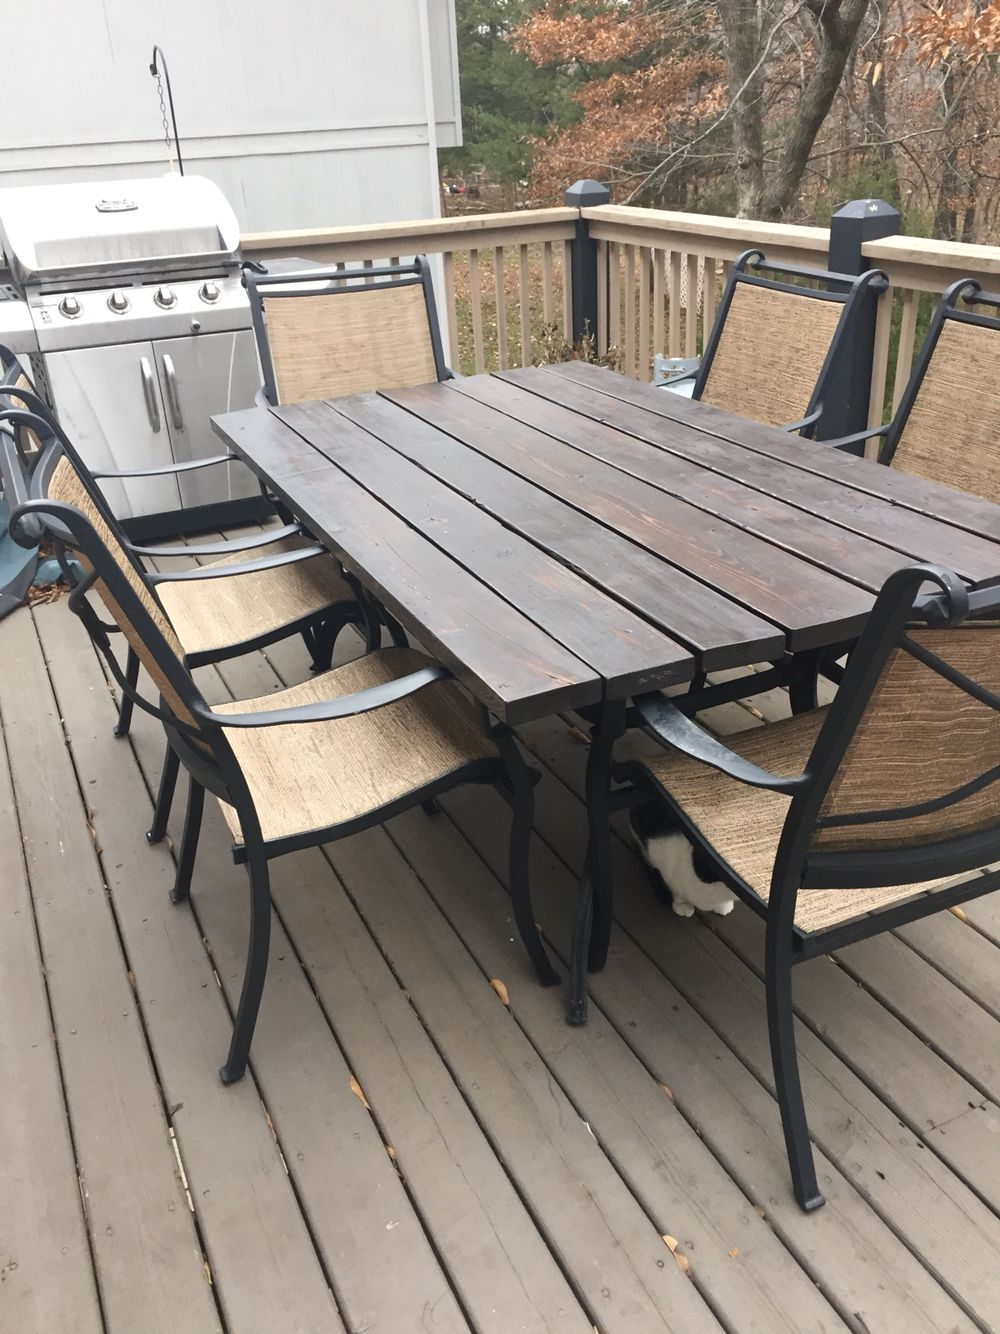 Replacement Table Tops For Patio Furniture.Replacement Top For Patio Table After Glass Top Shattered Projects